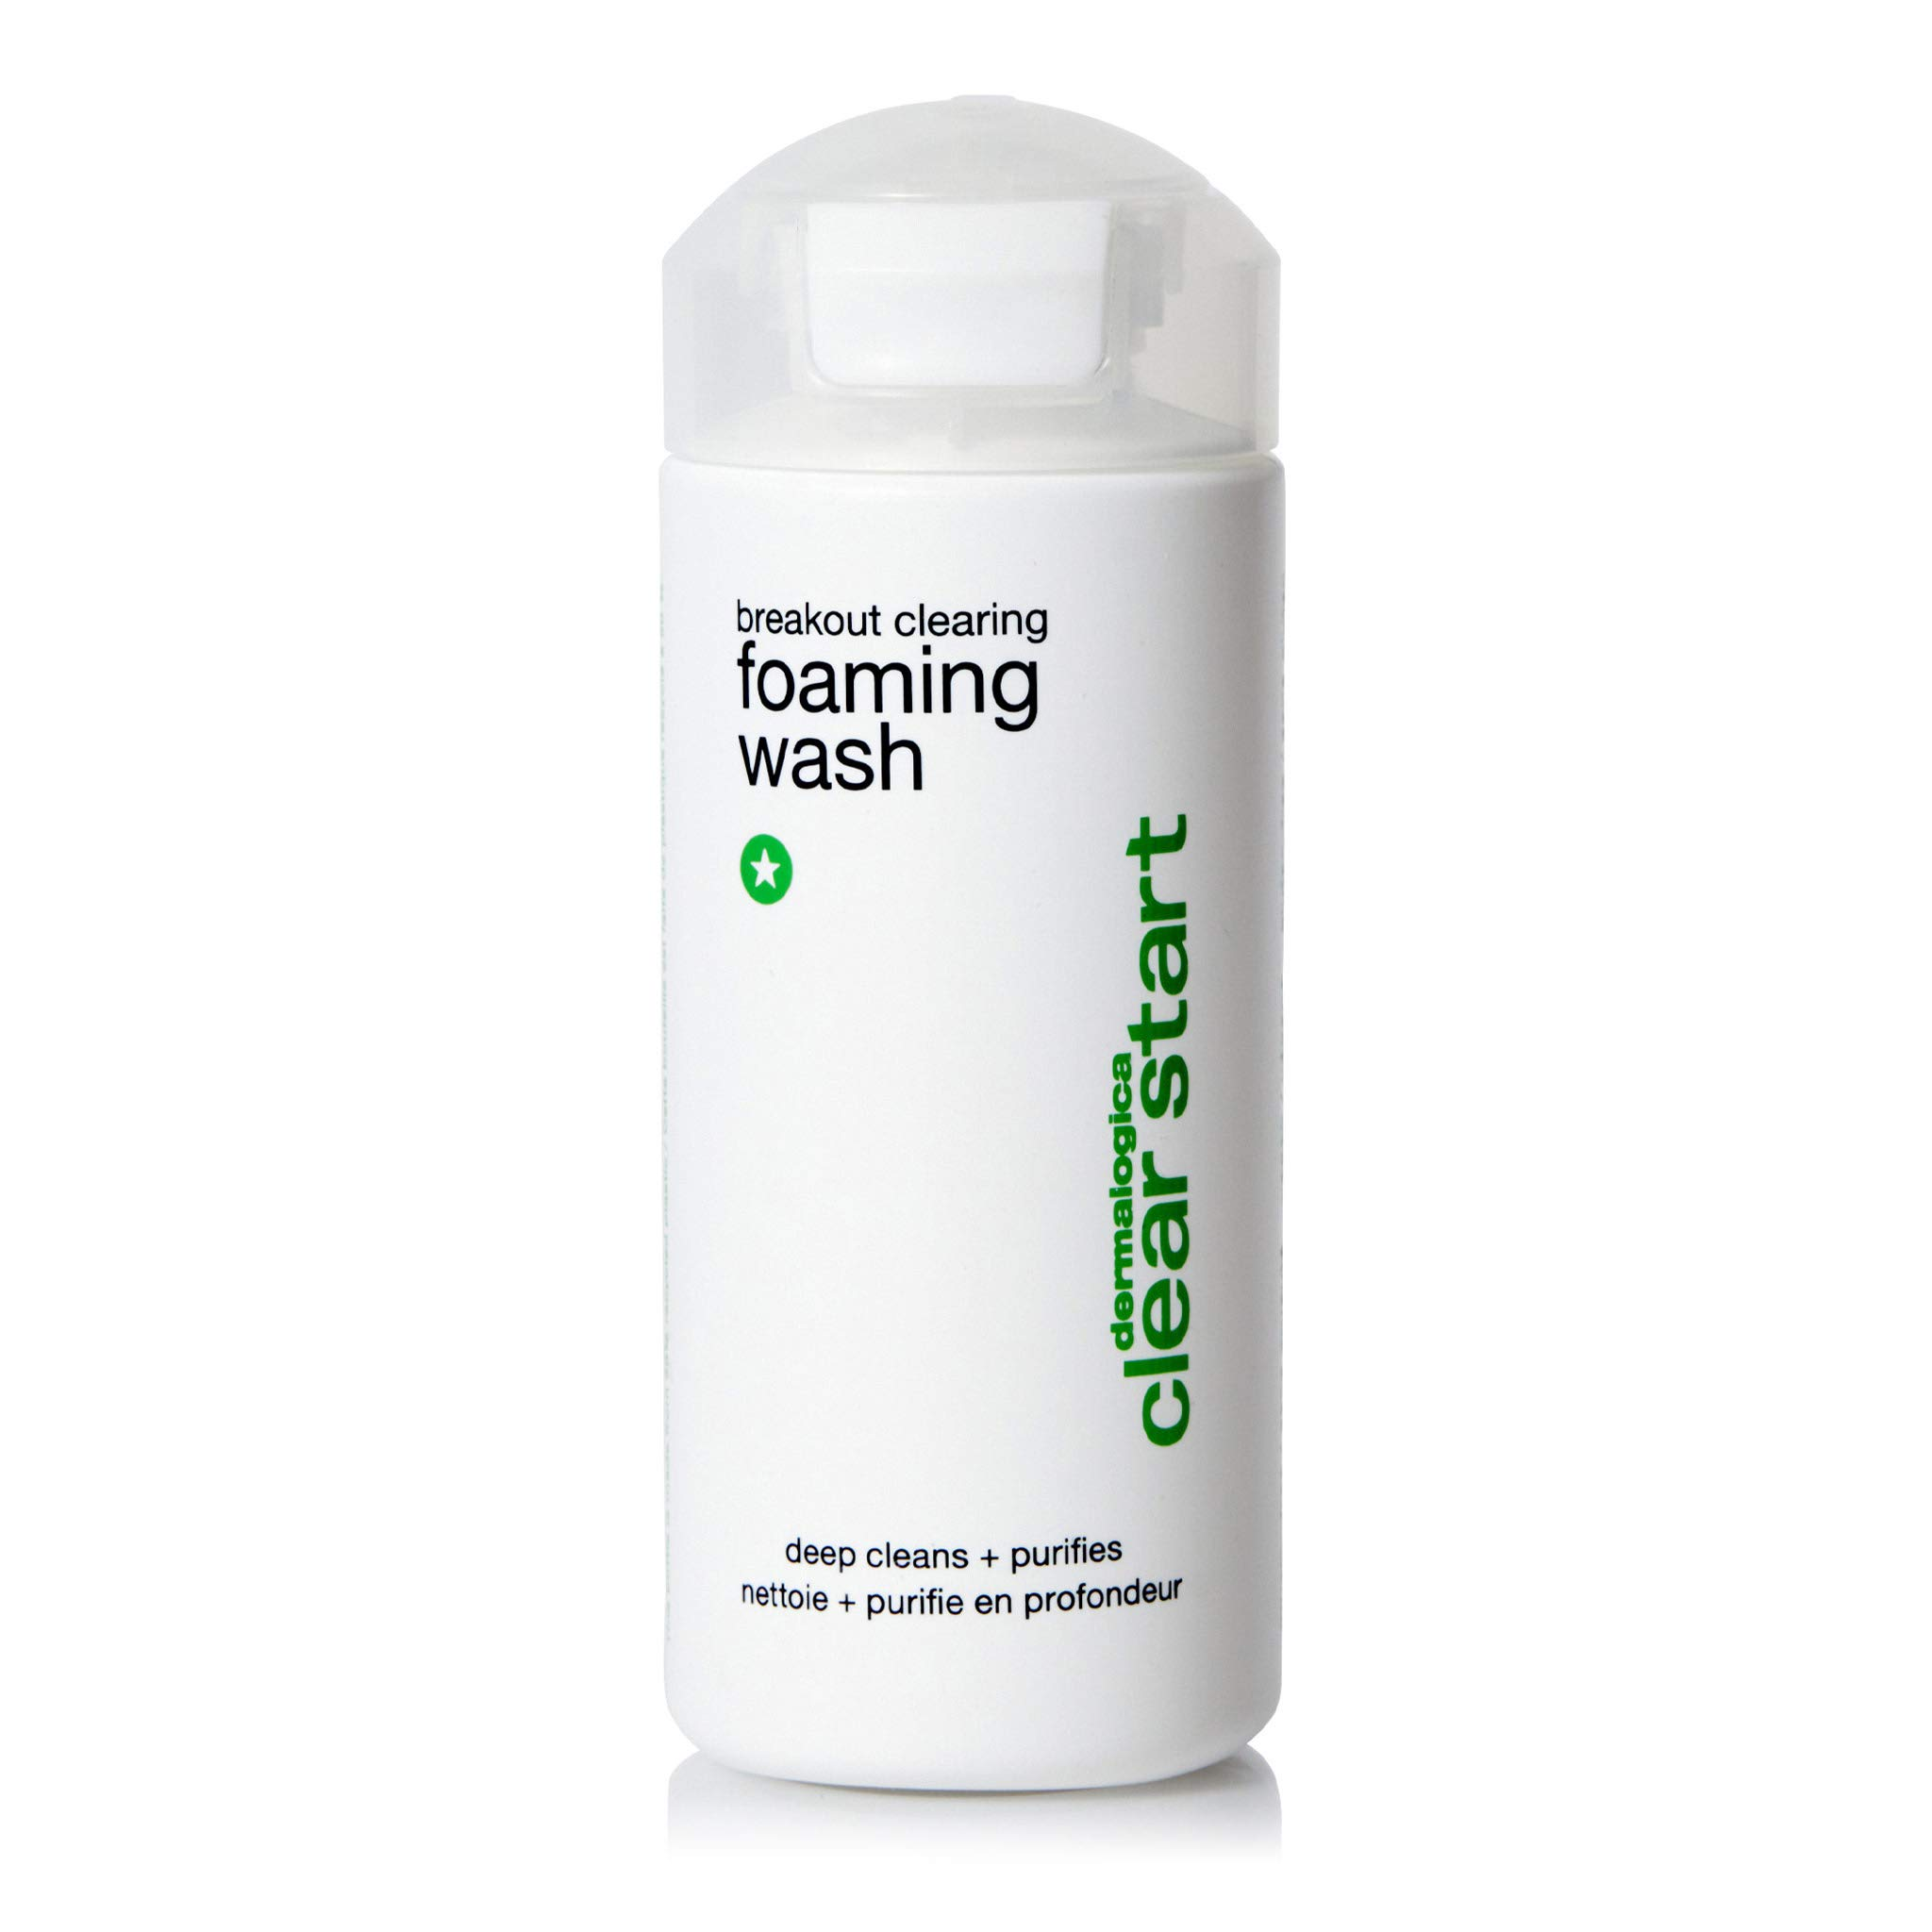 Dermalogica Breakout Clearing Foaming Wash - Acne Face Wash with Salicylic Acid & Tea Tree Oil - Dive Into Pores to Clear, Soothe, & Energize